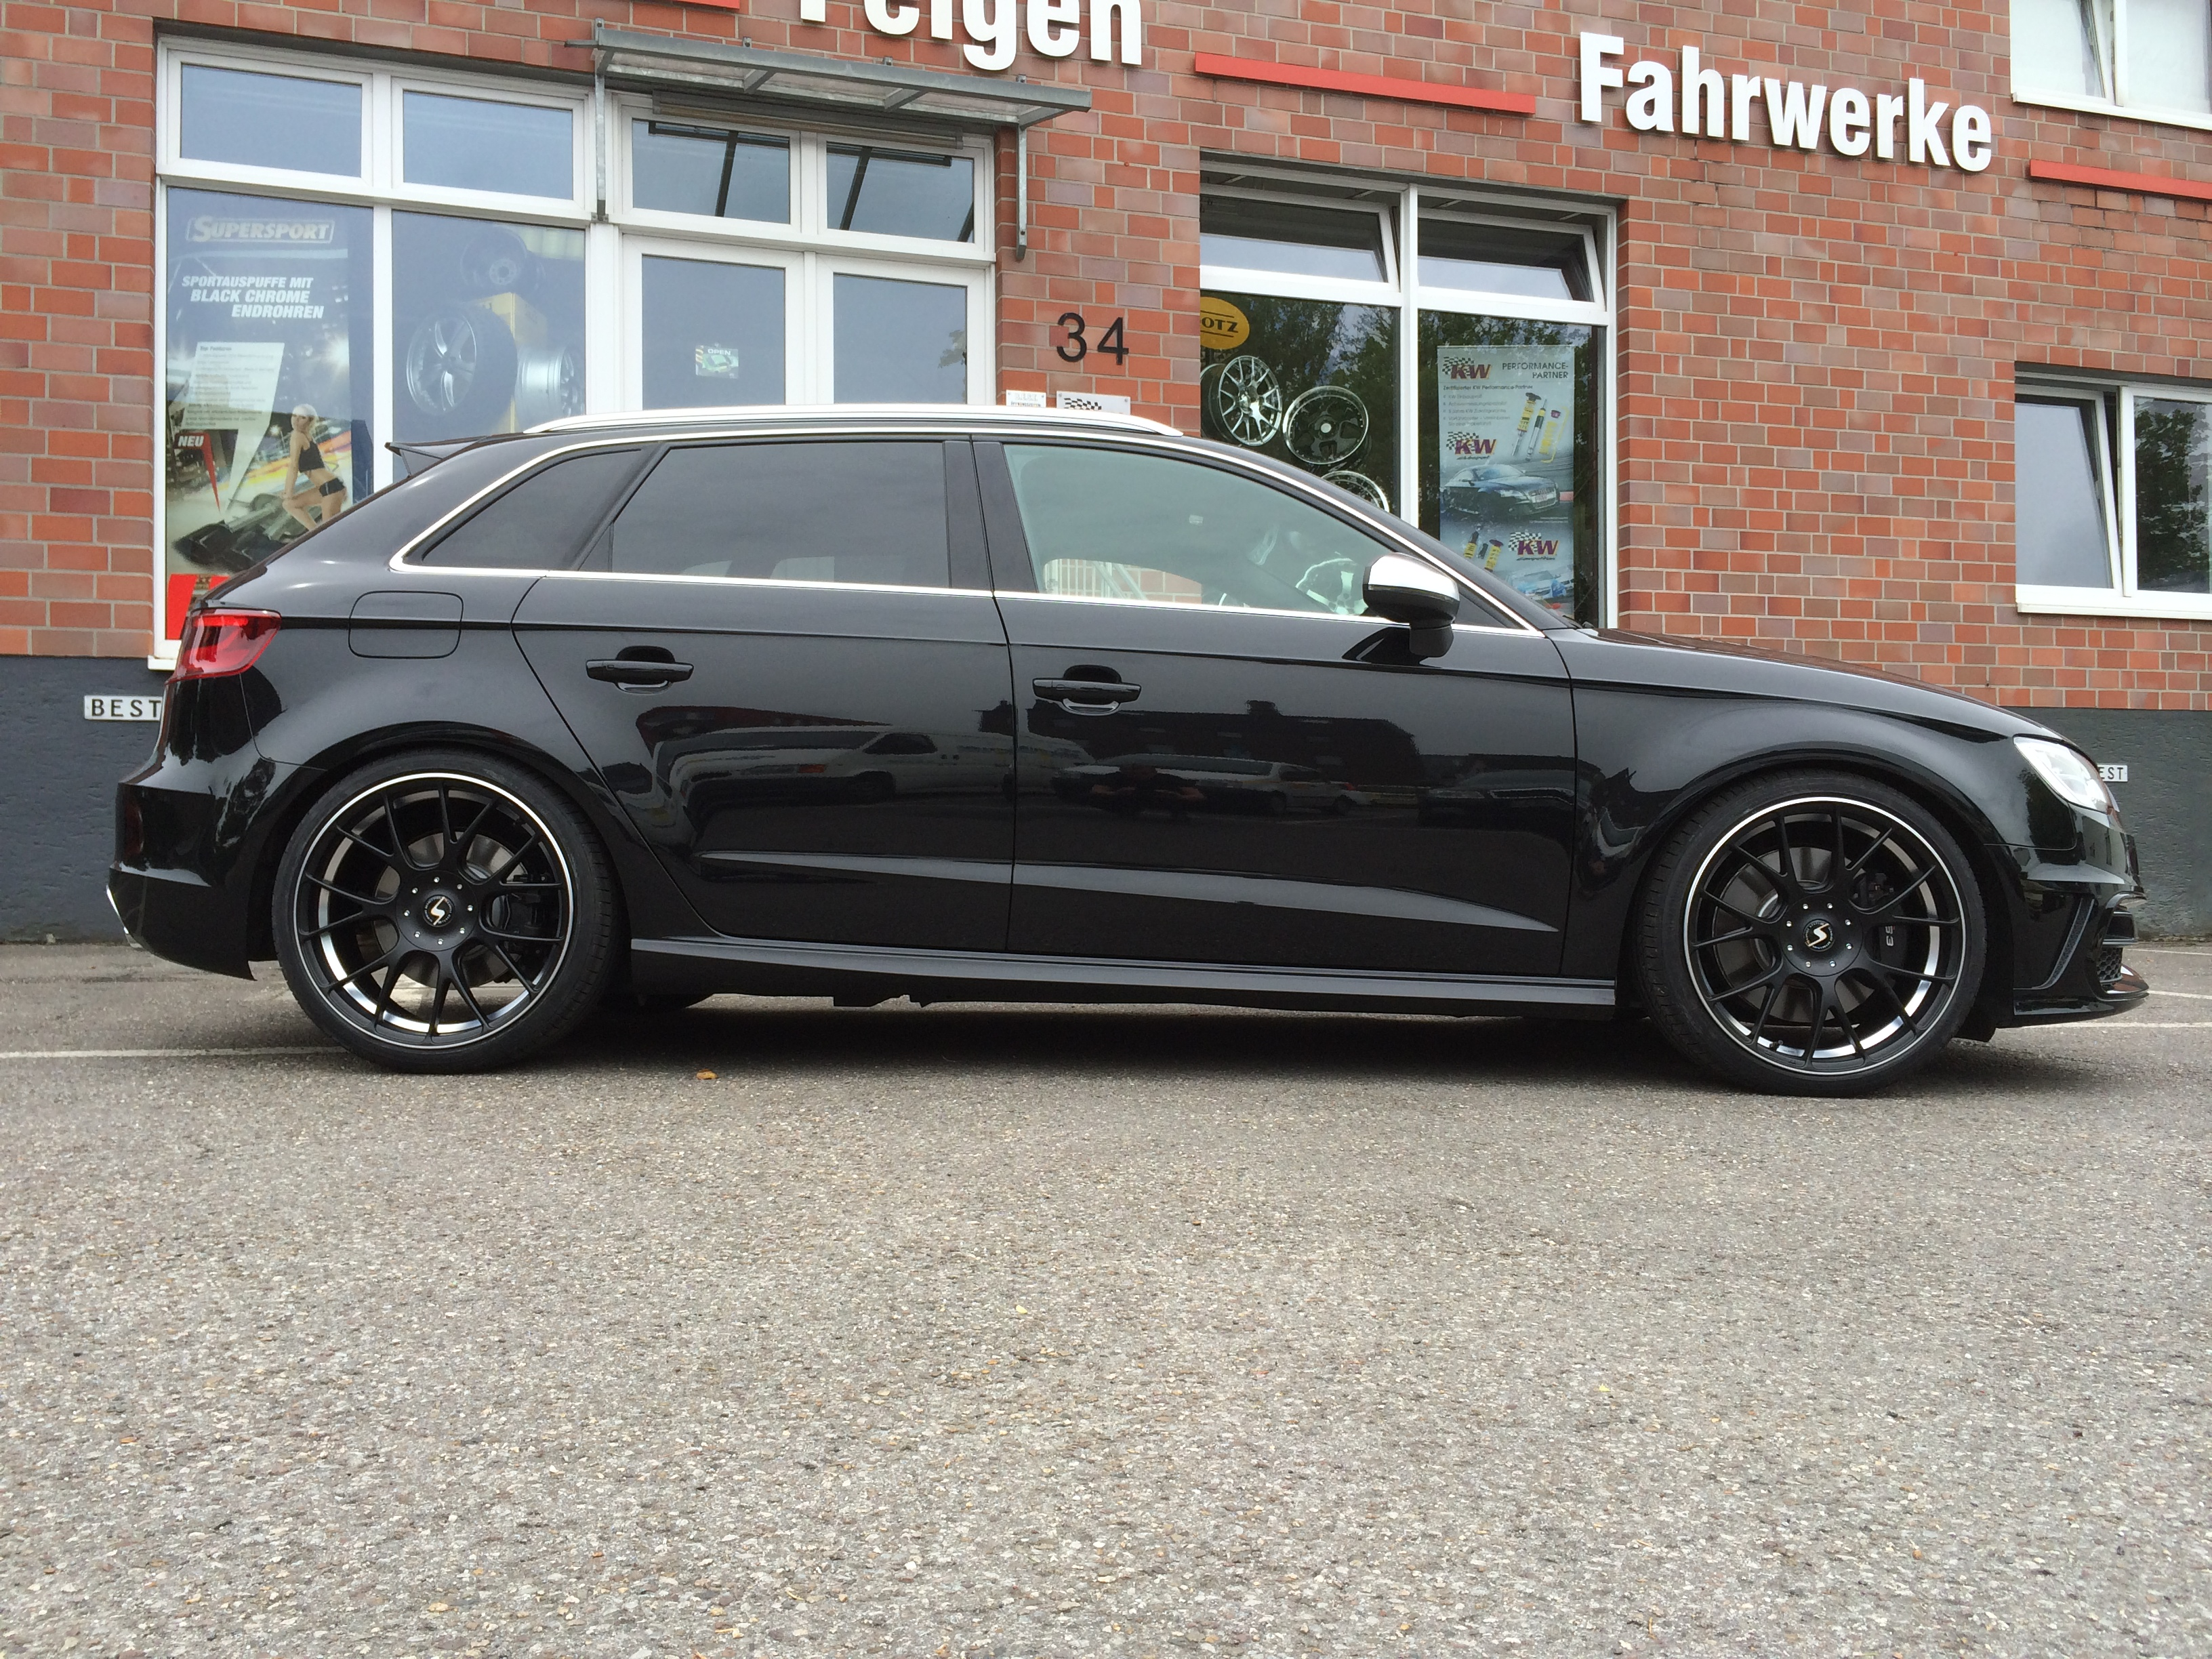 audi s3 gambit 1 tlg 19 zoll audi bildergalerie. Black Bedroom Furniture Sets. Home Design Ideas